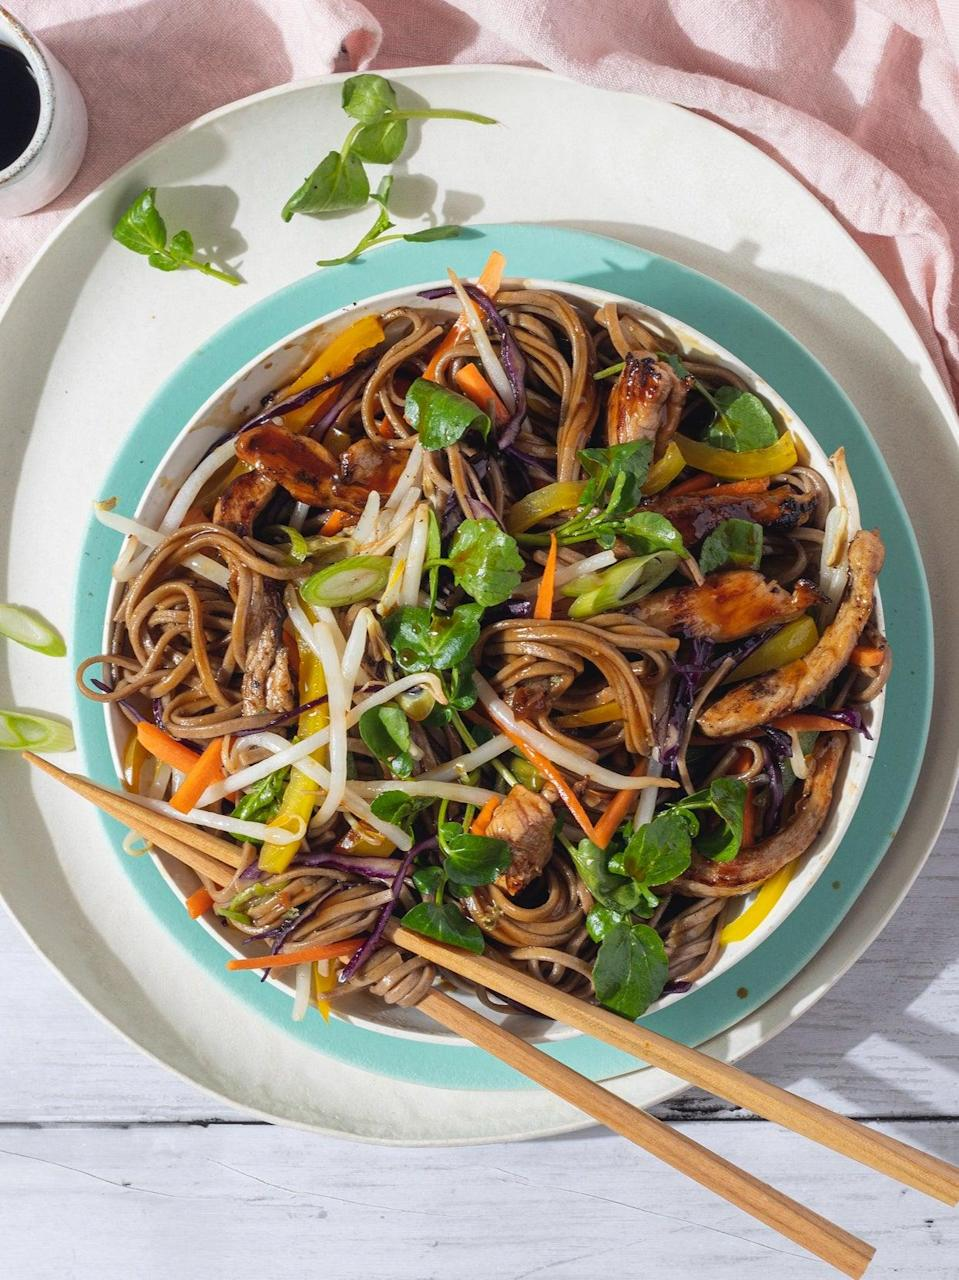 These colourful noodles don't only look great, they taste great too (Lee Kum Kee - Jeremy Pang)